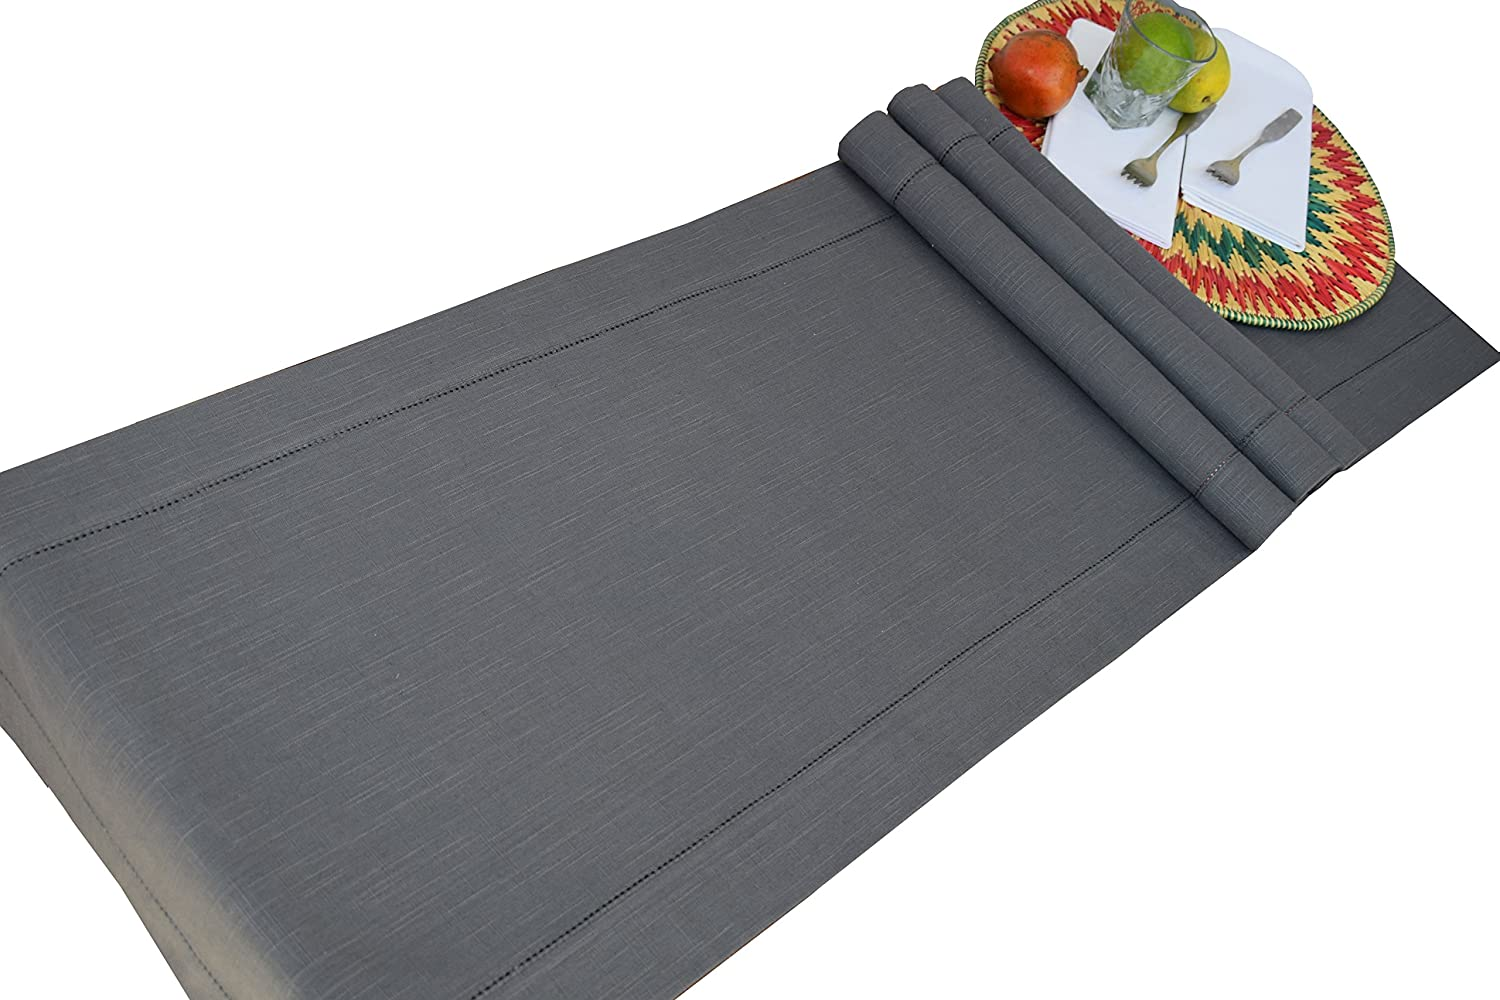 Linen Clubs Slub Cotton Hemstitched Table Runner - Charcoal 16x90